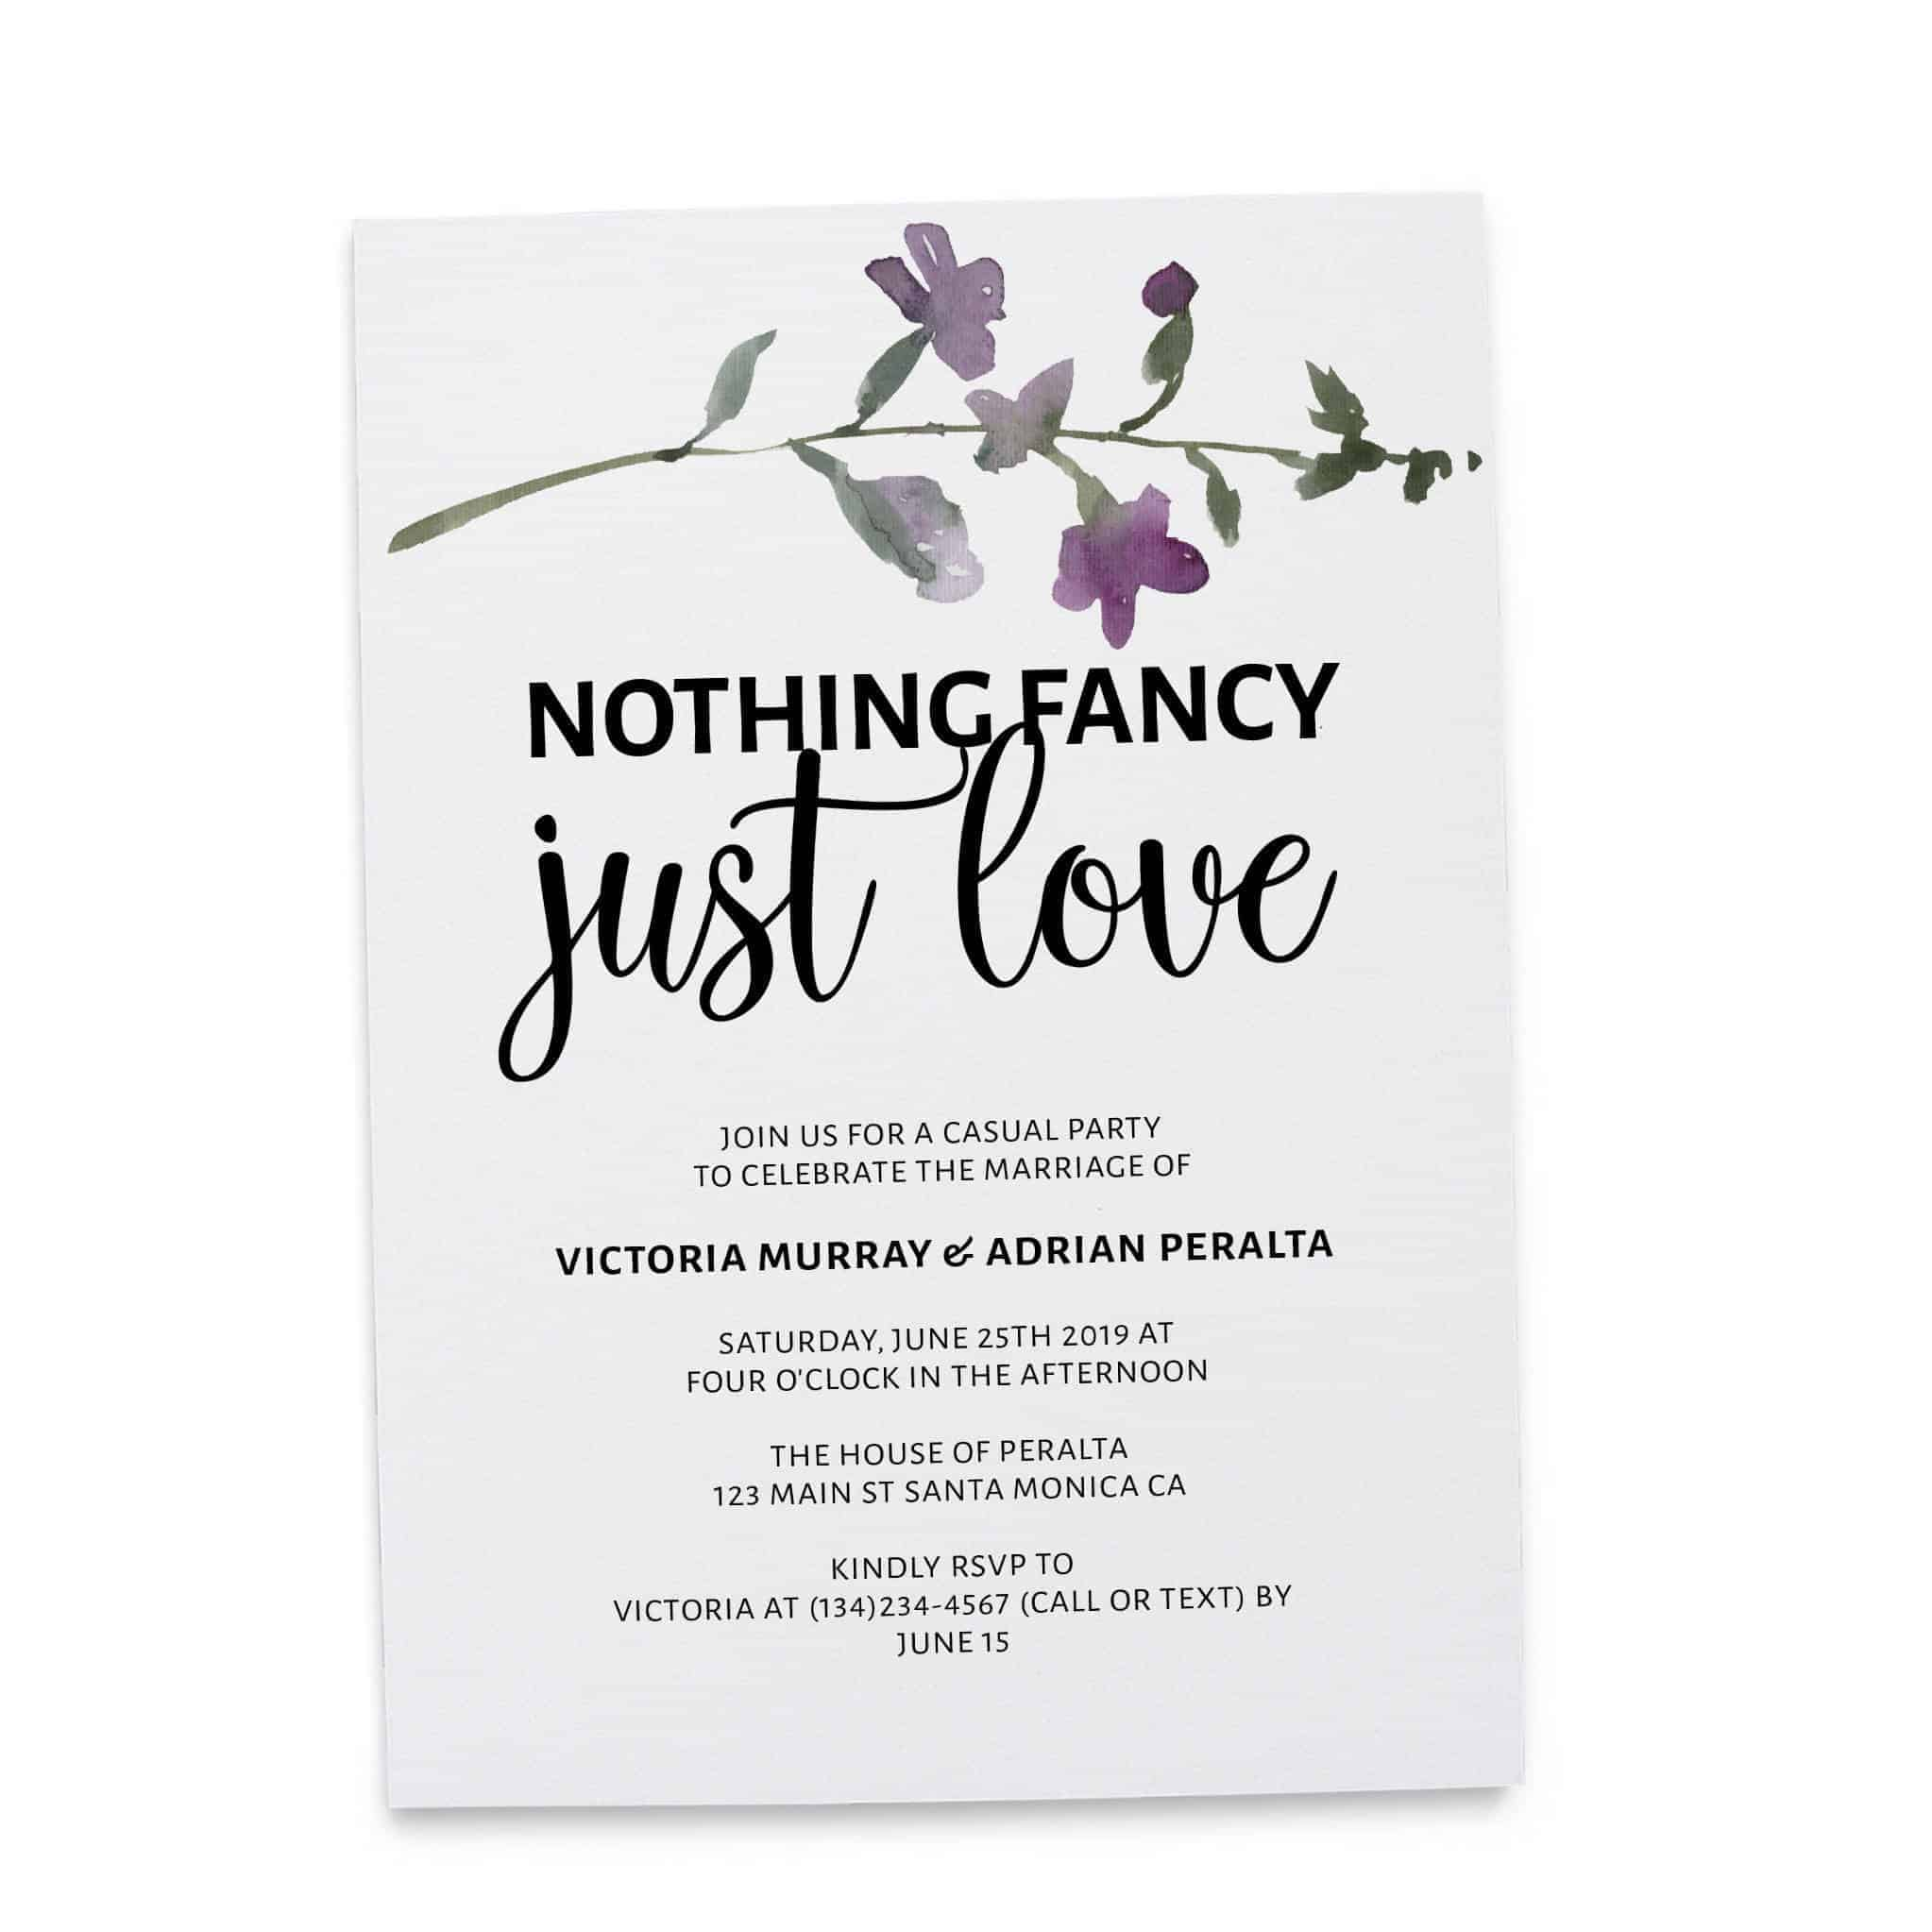 Nothing Fancy Just Love, Elopement Announcement, Casual Wedding Announcement Cards, Printed Printable Wedding Flat Card elopement262